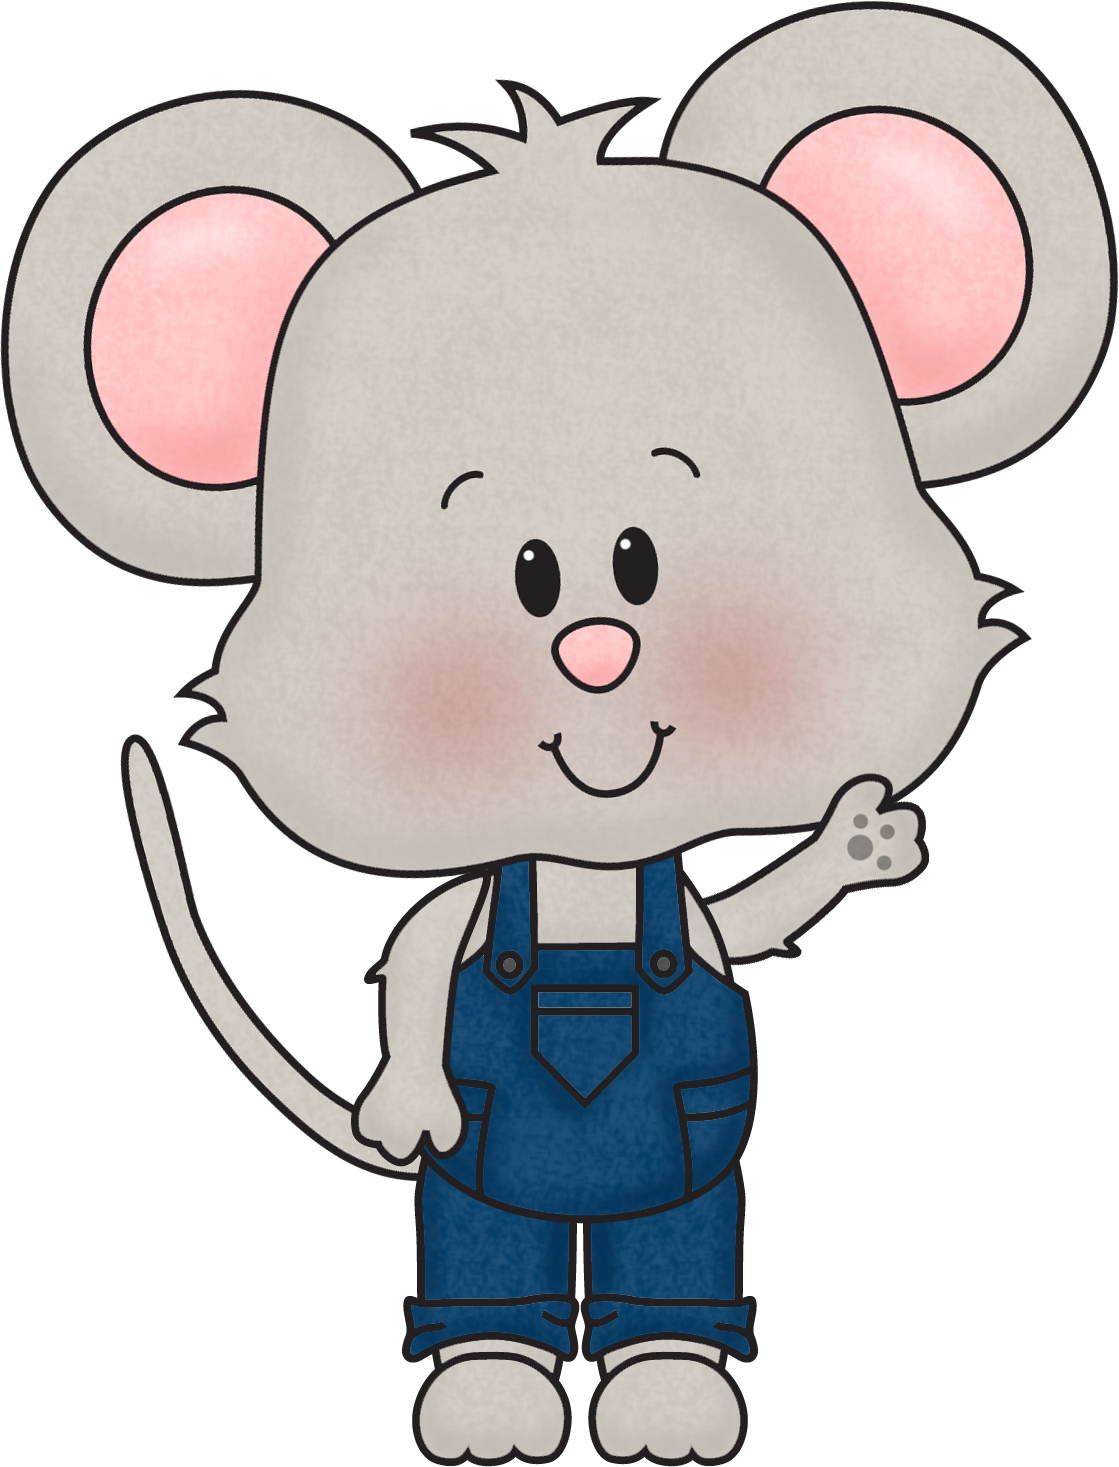 Church mouse free clipart clip transparent stock Free Cute Mouse Cliparts, Download Free Clip Art, Free Clip ... clip transparent stock